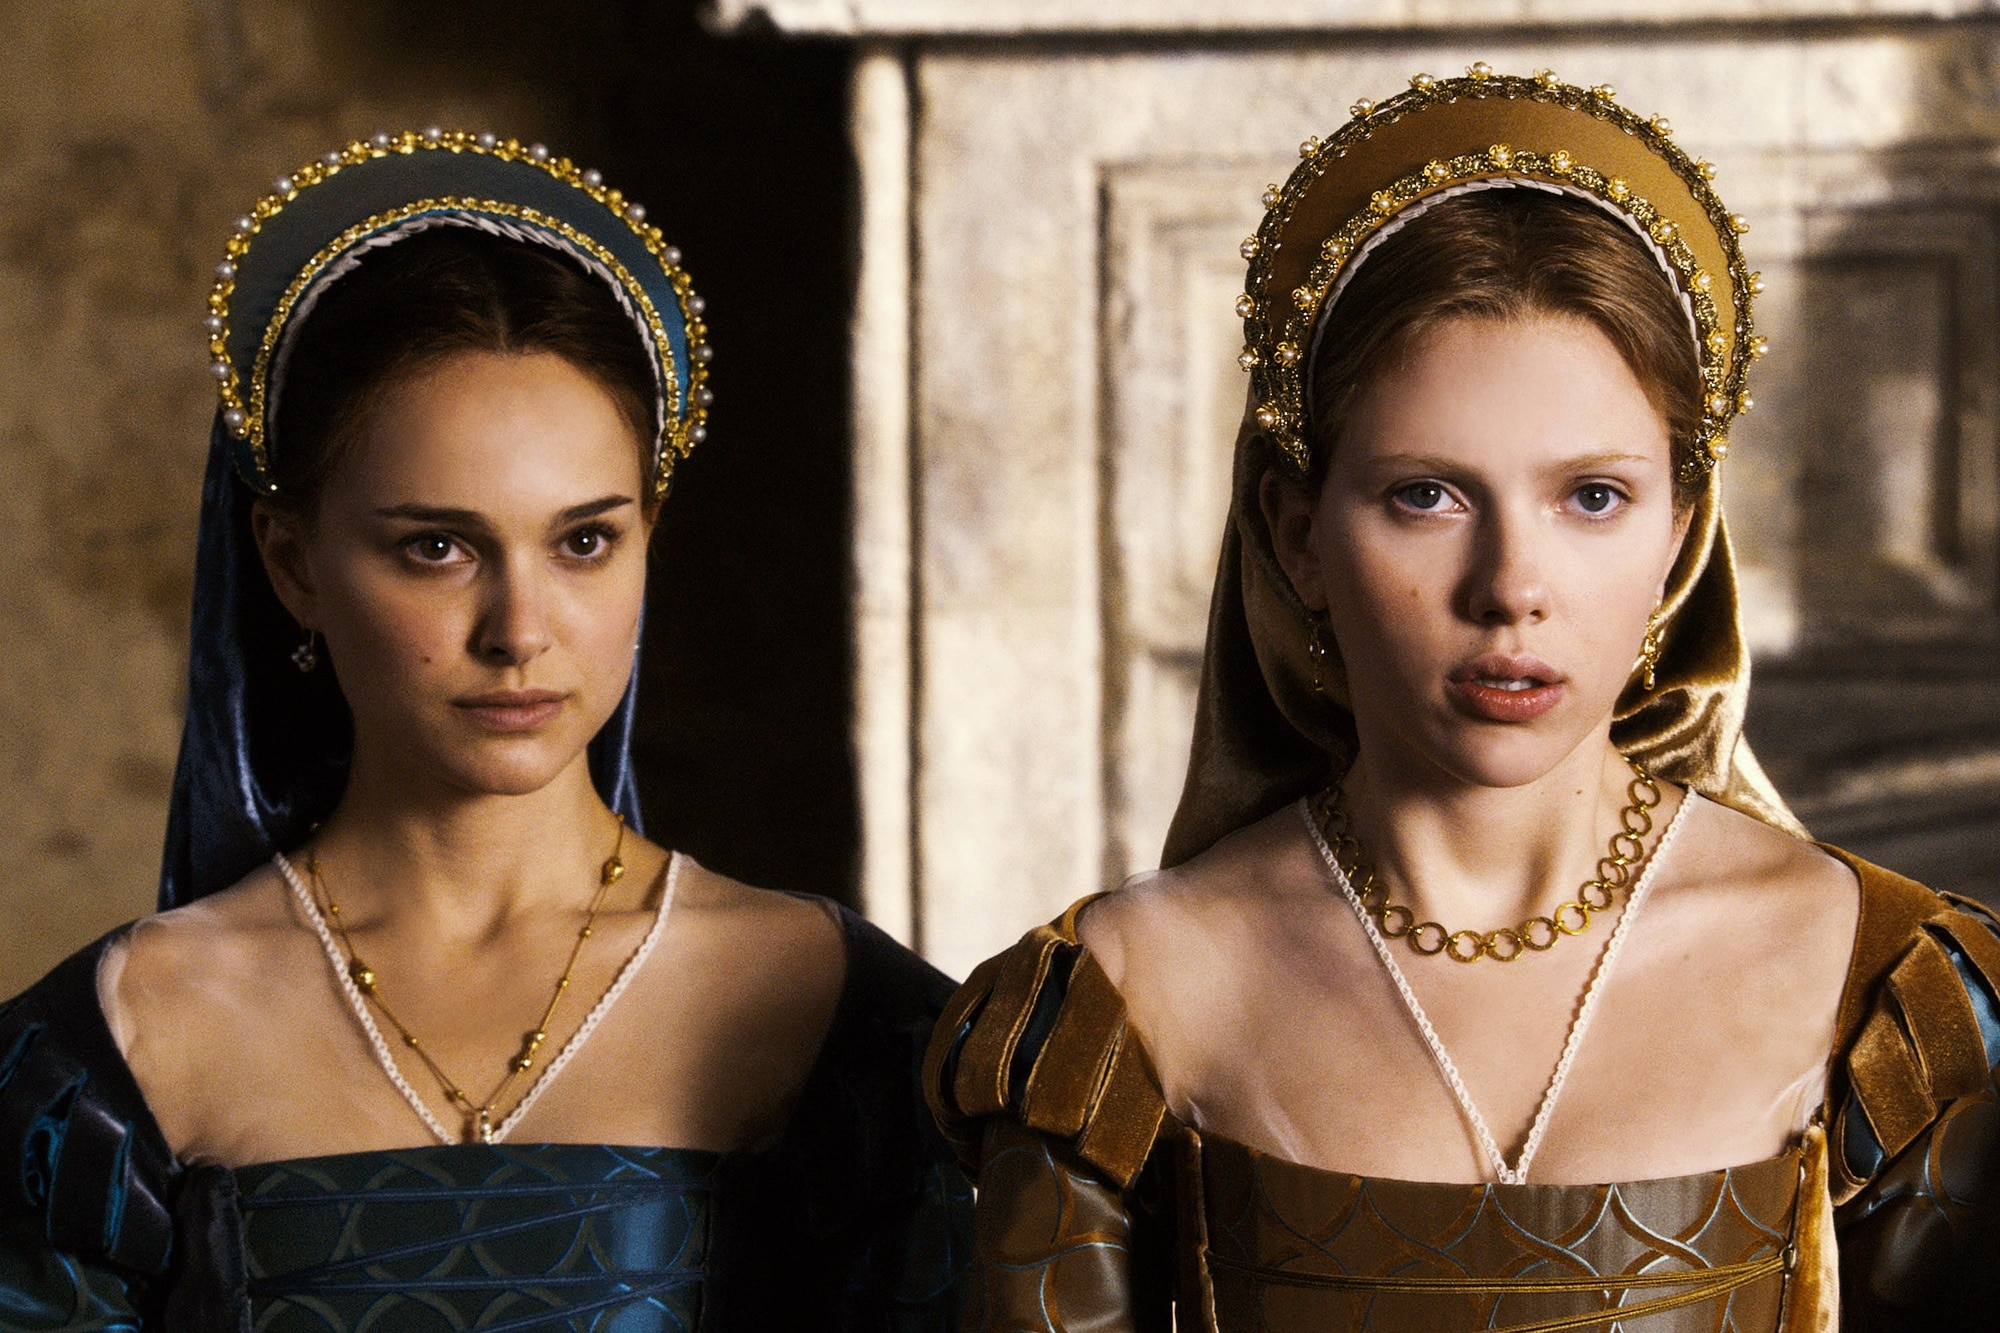 Renaissance hair accessories: Natalie Portman and Scarlett Johansson in The Other Boleyn Girl with renaissance clothing and headress